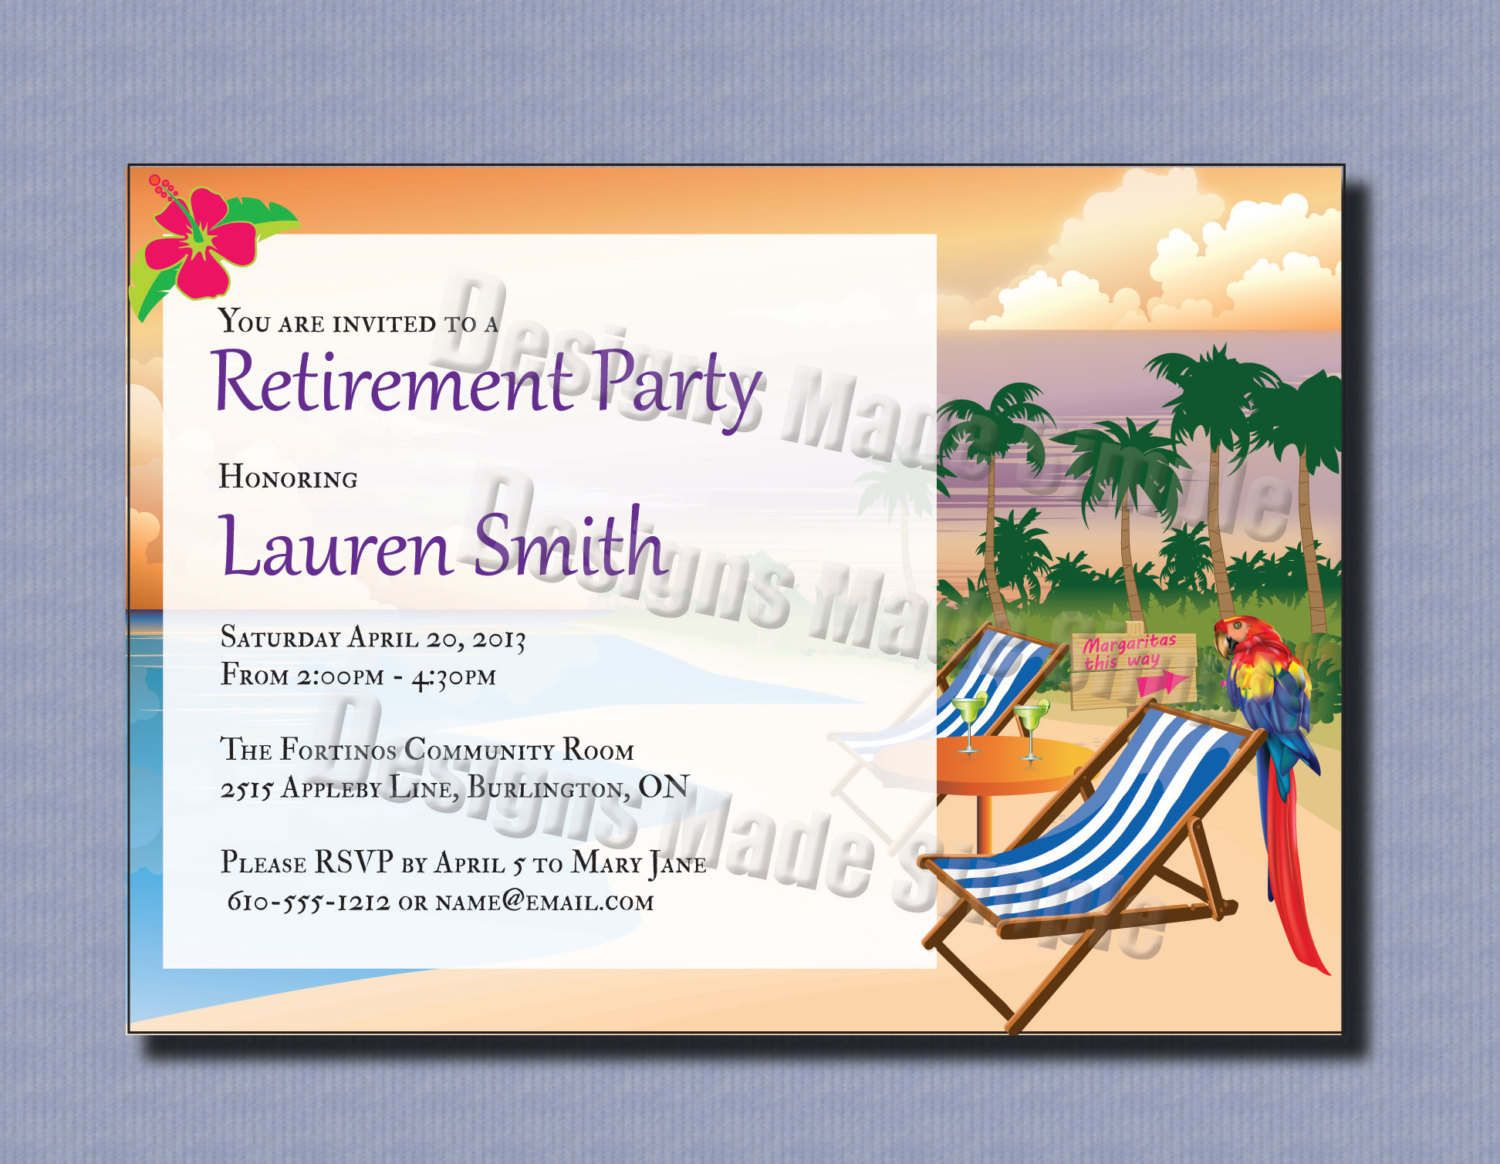 Retirement Invitation Template Free Pictures Of Photo Albums